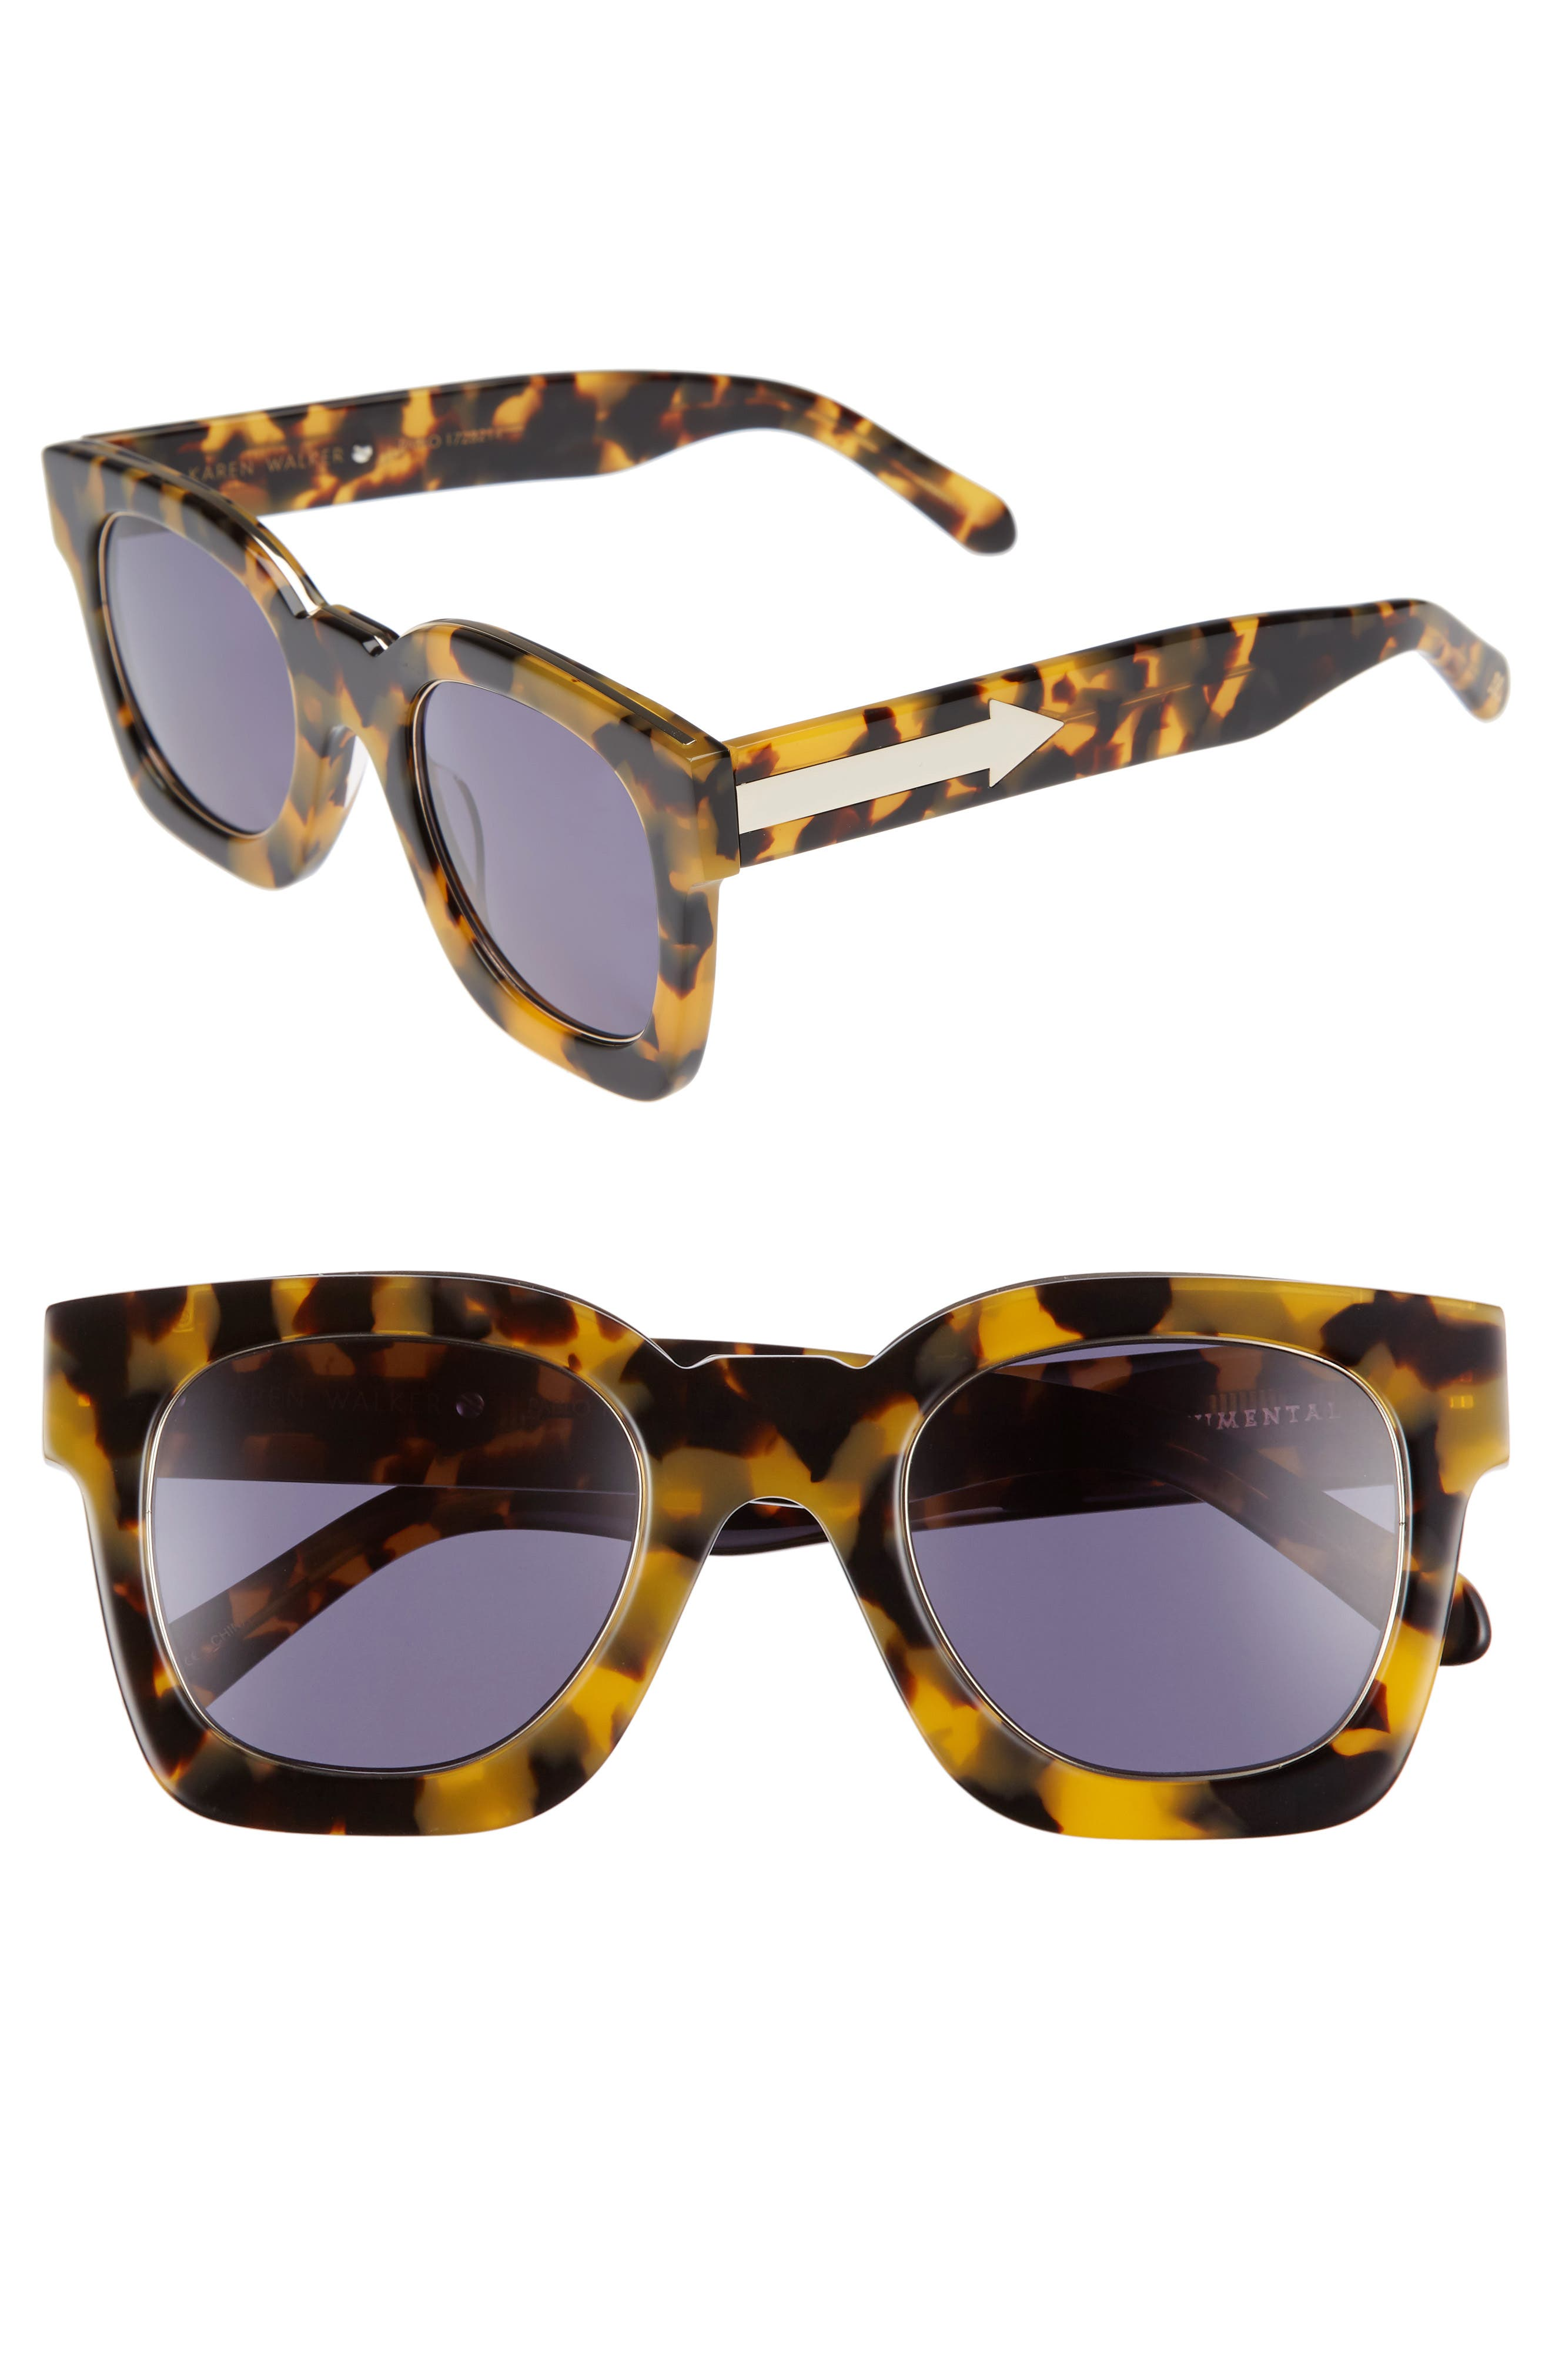 KAREN WALKER x Monumental Pablo 50mm Polarized Sunglasses